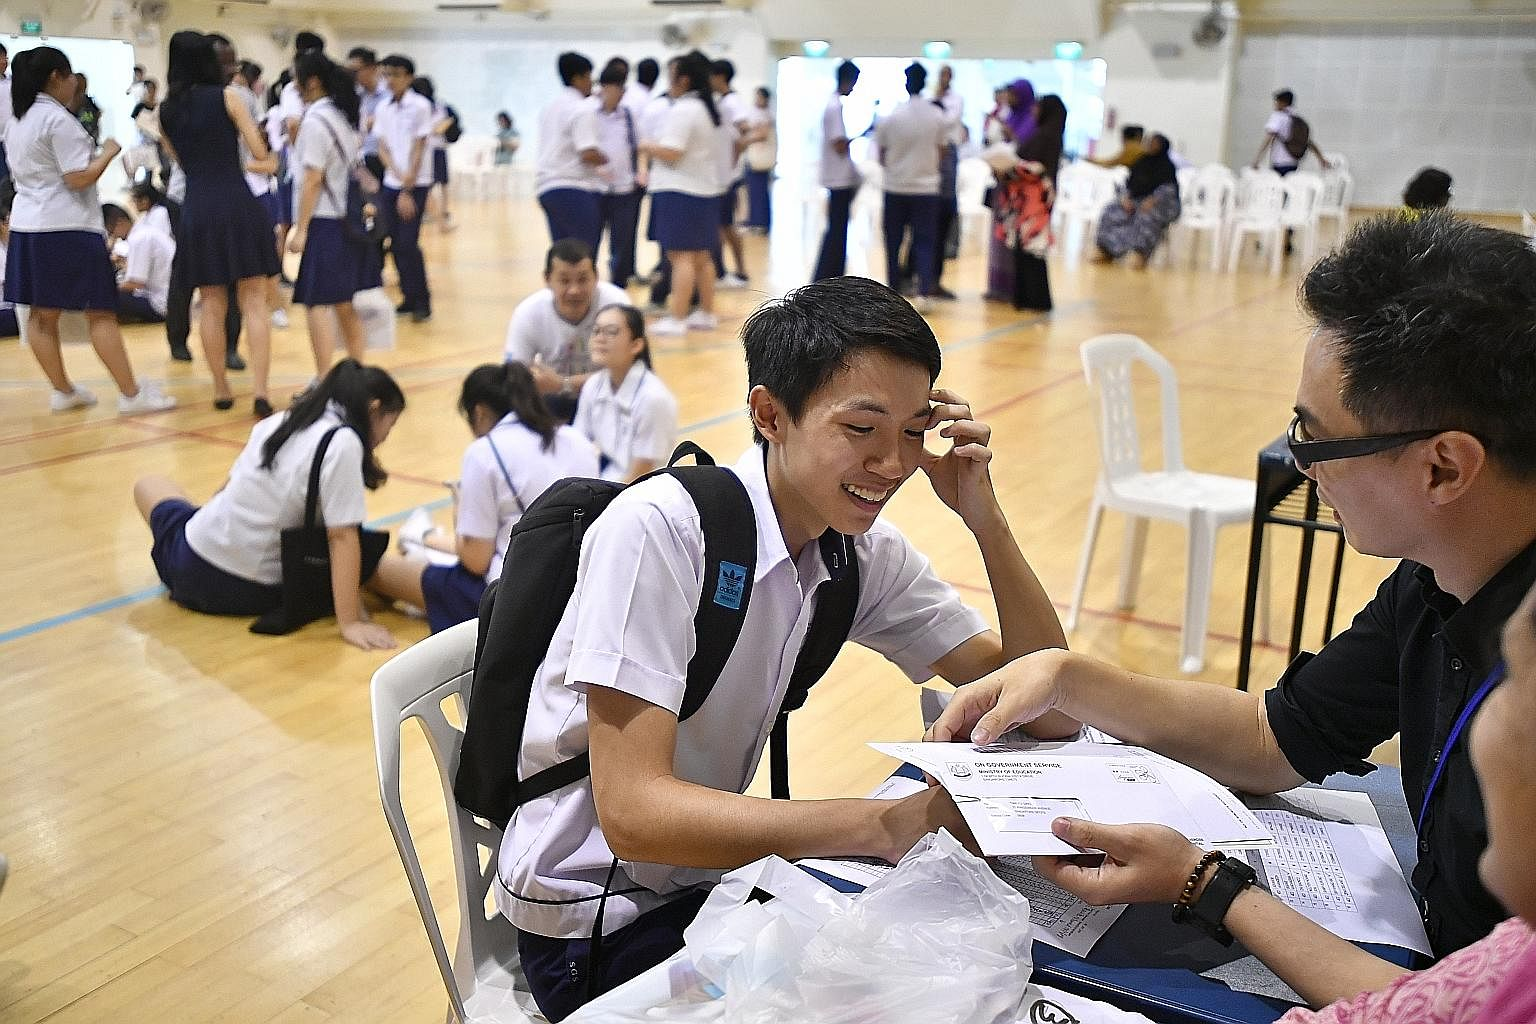 A student collecting his O-level exam results at Serangoon Garden Secondary School last month. On the issue of exam scripts, Education Minister Ong Ye Kung said that by the year end, marking for all GCE exams would be shifted online, so there should